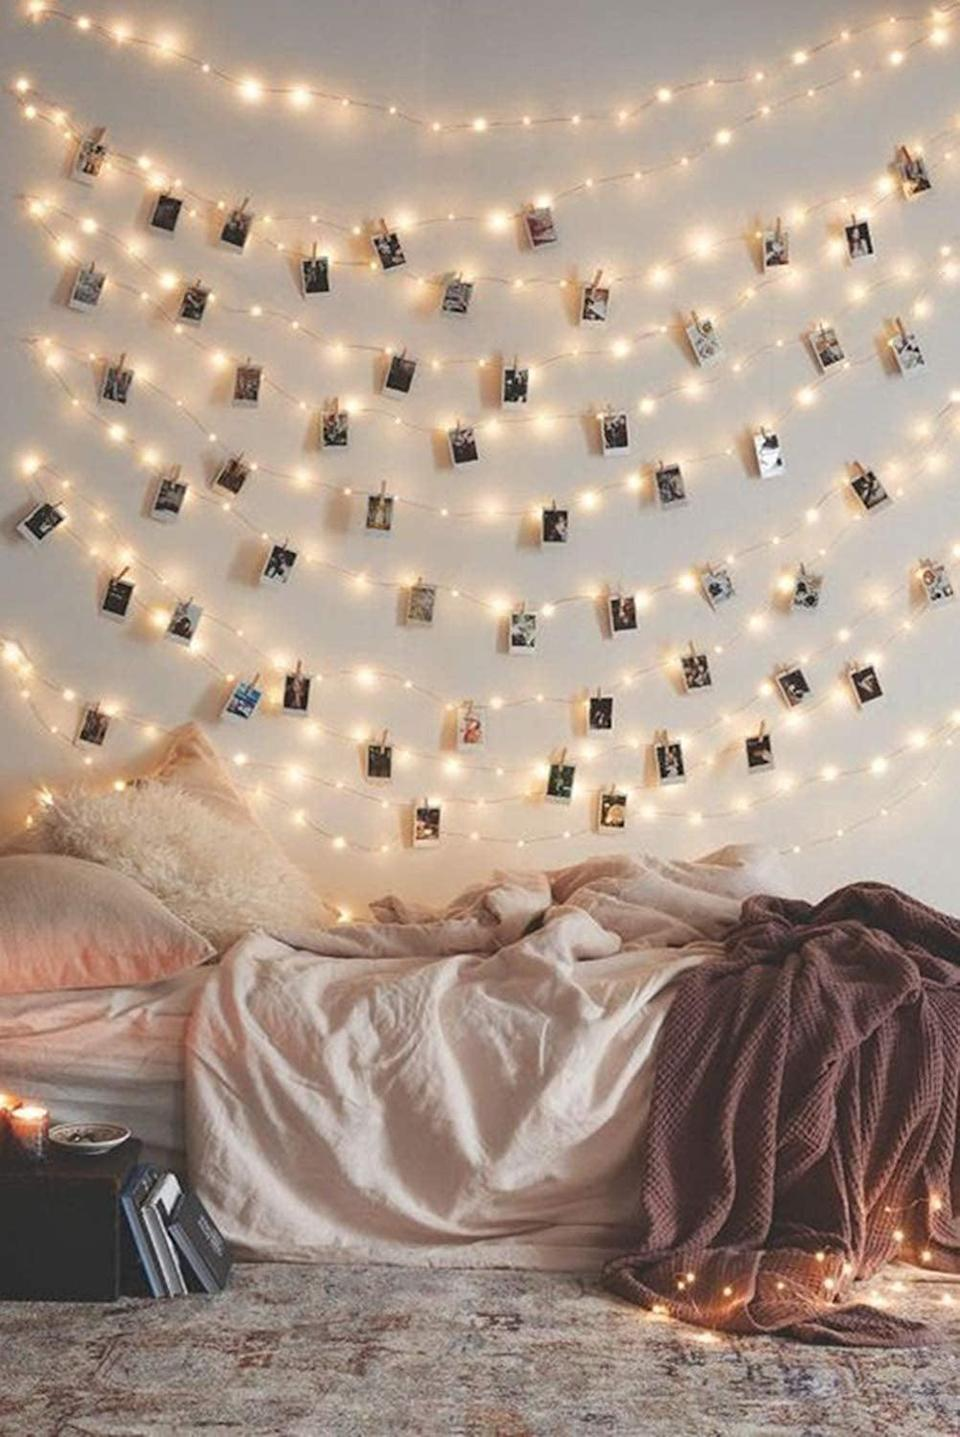 """<p>Add some extra light to any room with these <a href=""""https://www.popsugar.com/buy/50-LED-Photo-Clip-String-Lights-410881?p_name=50%20LED%20Photo%20Clip%20String%20Lights&retailer=amazon.com&pid=410881&price=15&evar1=casa%3Aus&evar9=46598422&evar98=https%3A%2F%2Fwww.popsugar.com%2Fhome%2Fphoto-gallery%2F46598422%2Fimage%2F46598459%2F50-LED-Photo-Clip-String-Lights&list1=shopping%2Chome%20decor%2Chome%20shopping&prop13=mobile&pdata=1"""" class=""""link rapid-noclick-resp"""" rel=""""nofollow noopener"""" target=""""_blank"""" data-ylk=""""slk:50 LED Photo Clip String Lights"""">50 LED Photo Clip String Lights</a> ($15).</p>"""